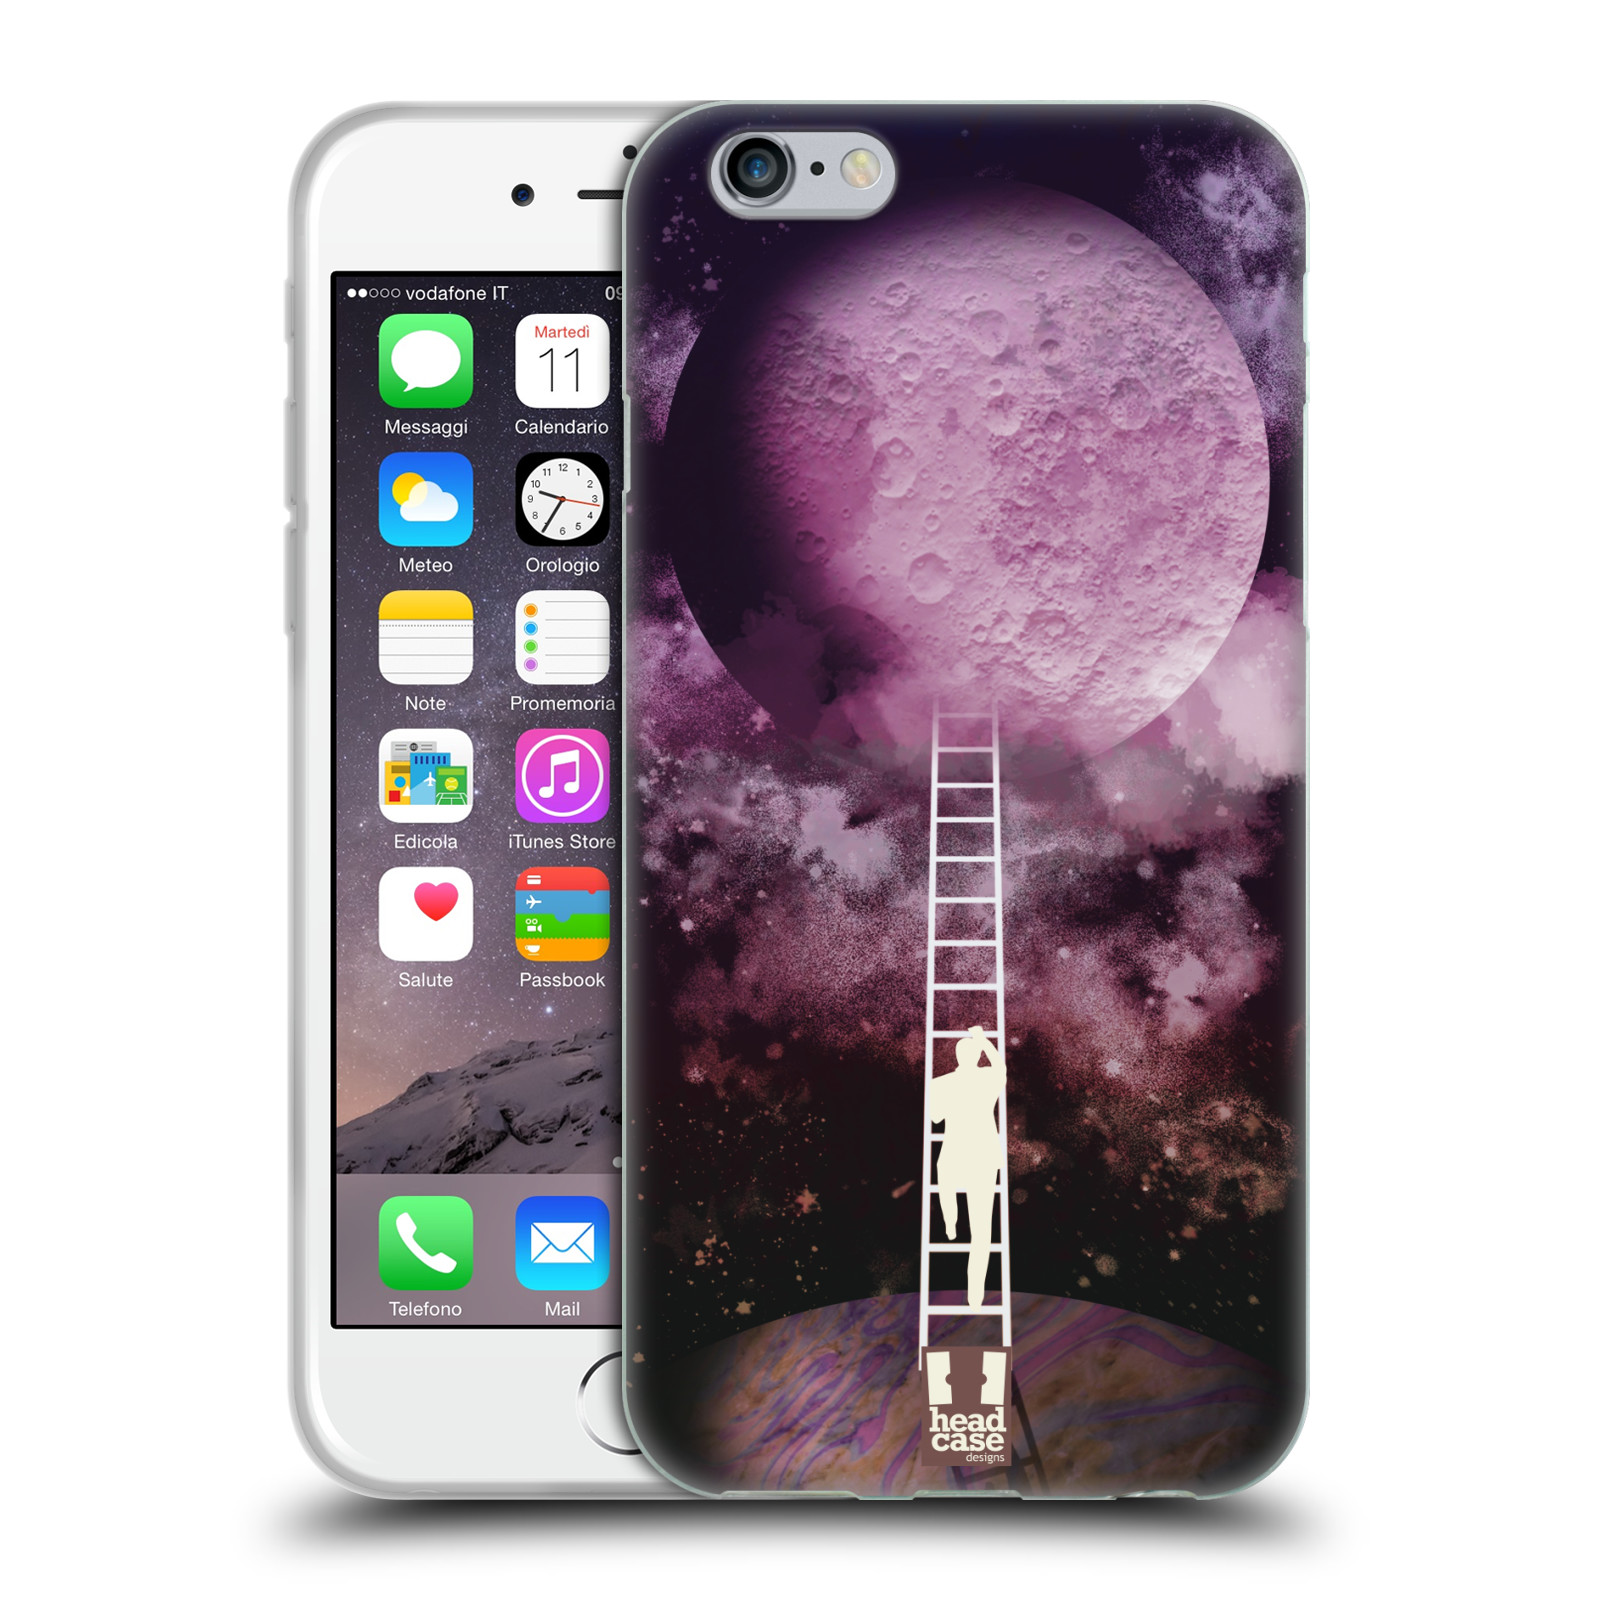 HEAD-CASE-DESIGNS-MOON-TRAVEL-SOFT-GEL-CASE-FOR-APPLE-iPHONE-PHONES